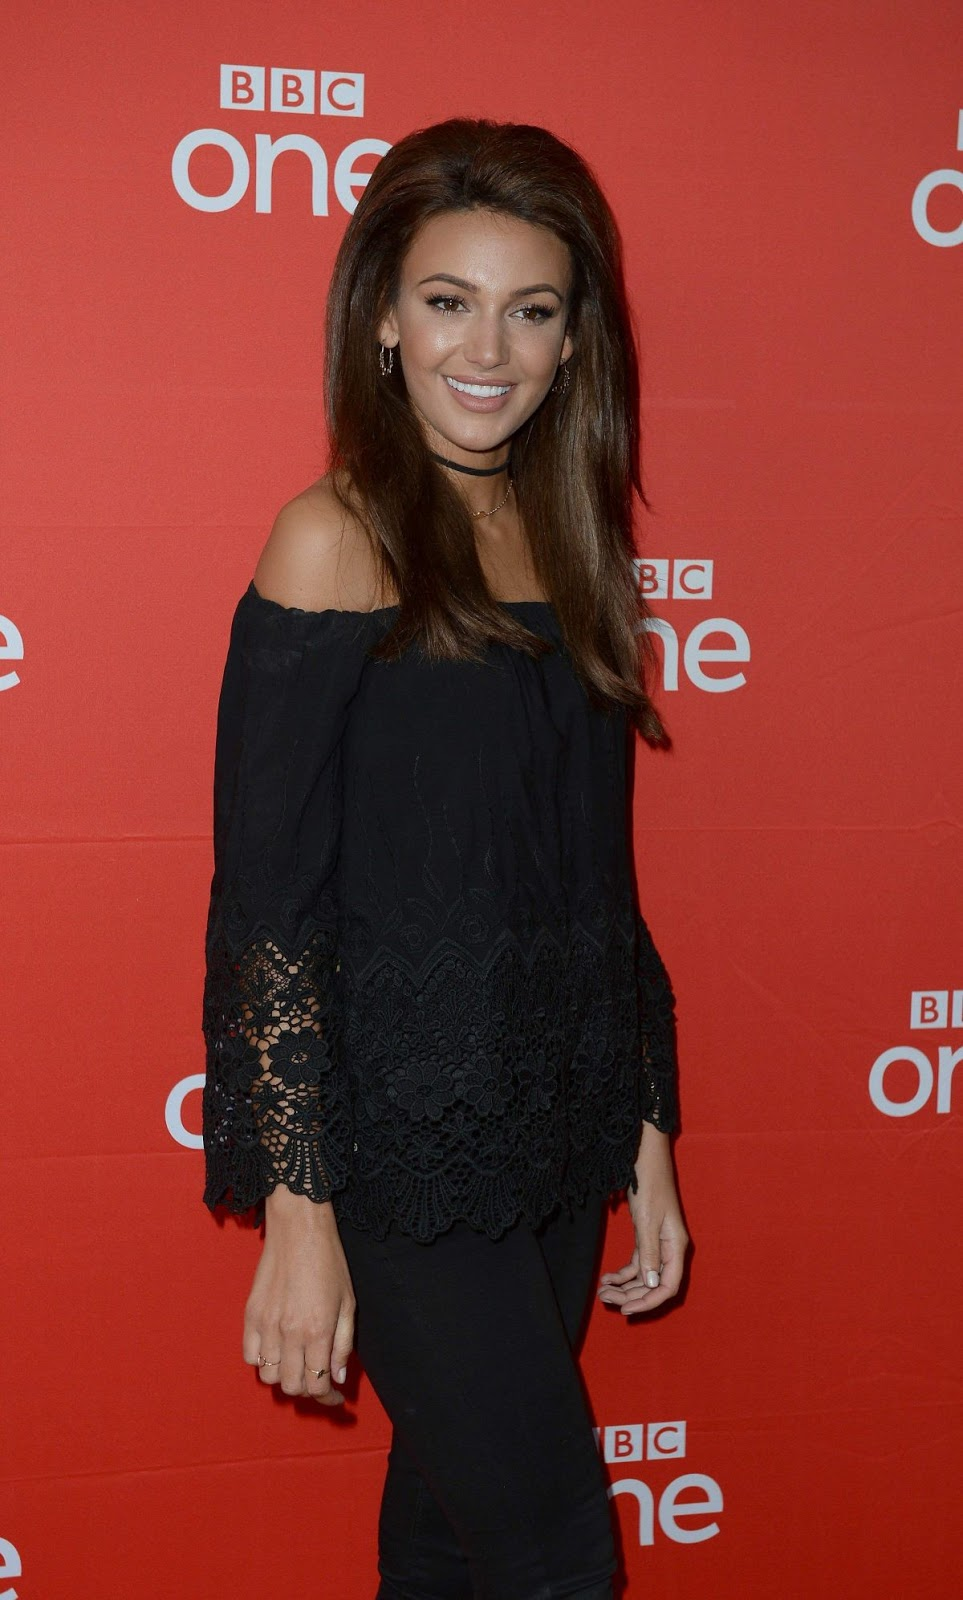 HQ Wallpapers of Michelle Keegan at Our Girl Screening in Manchester